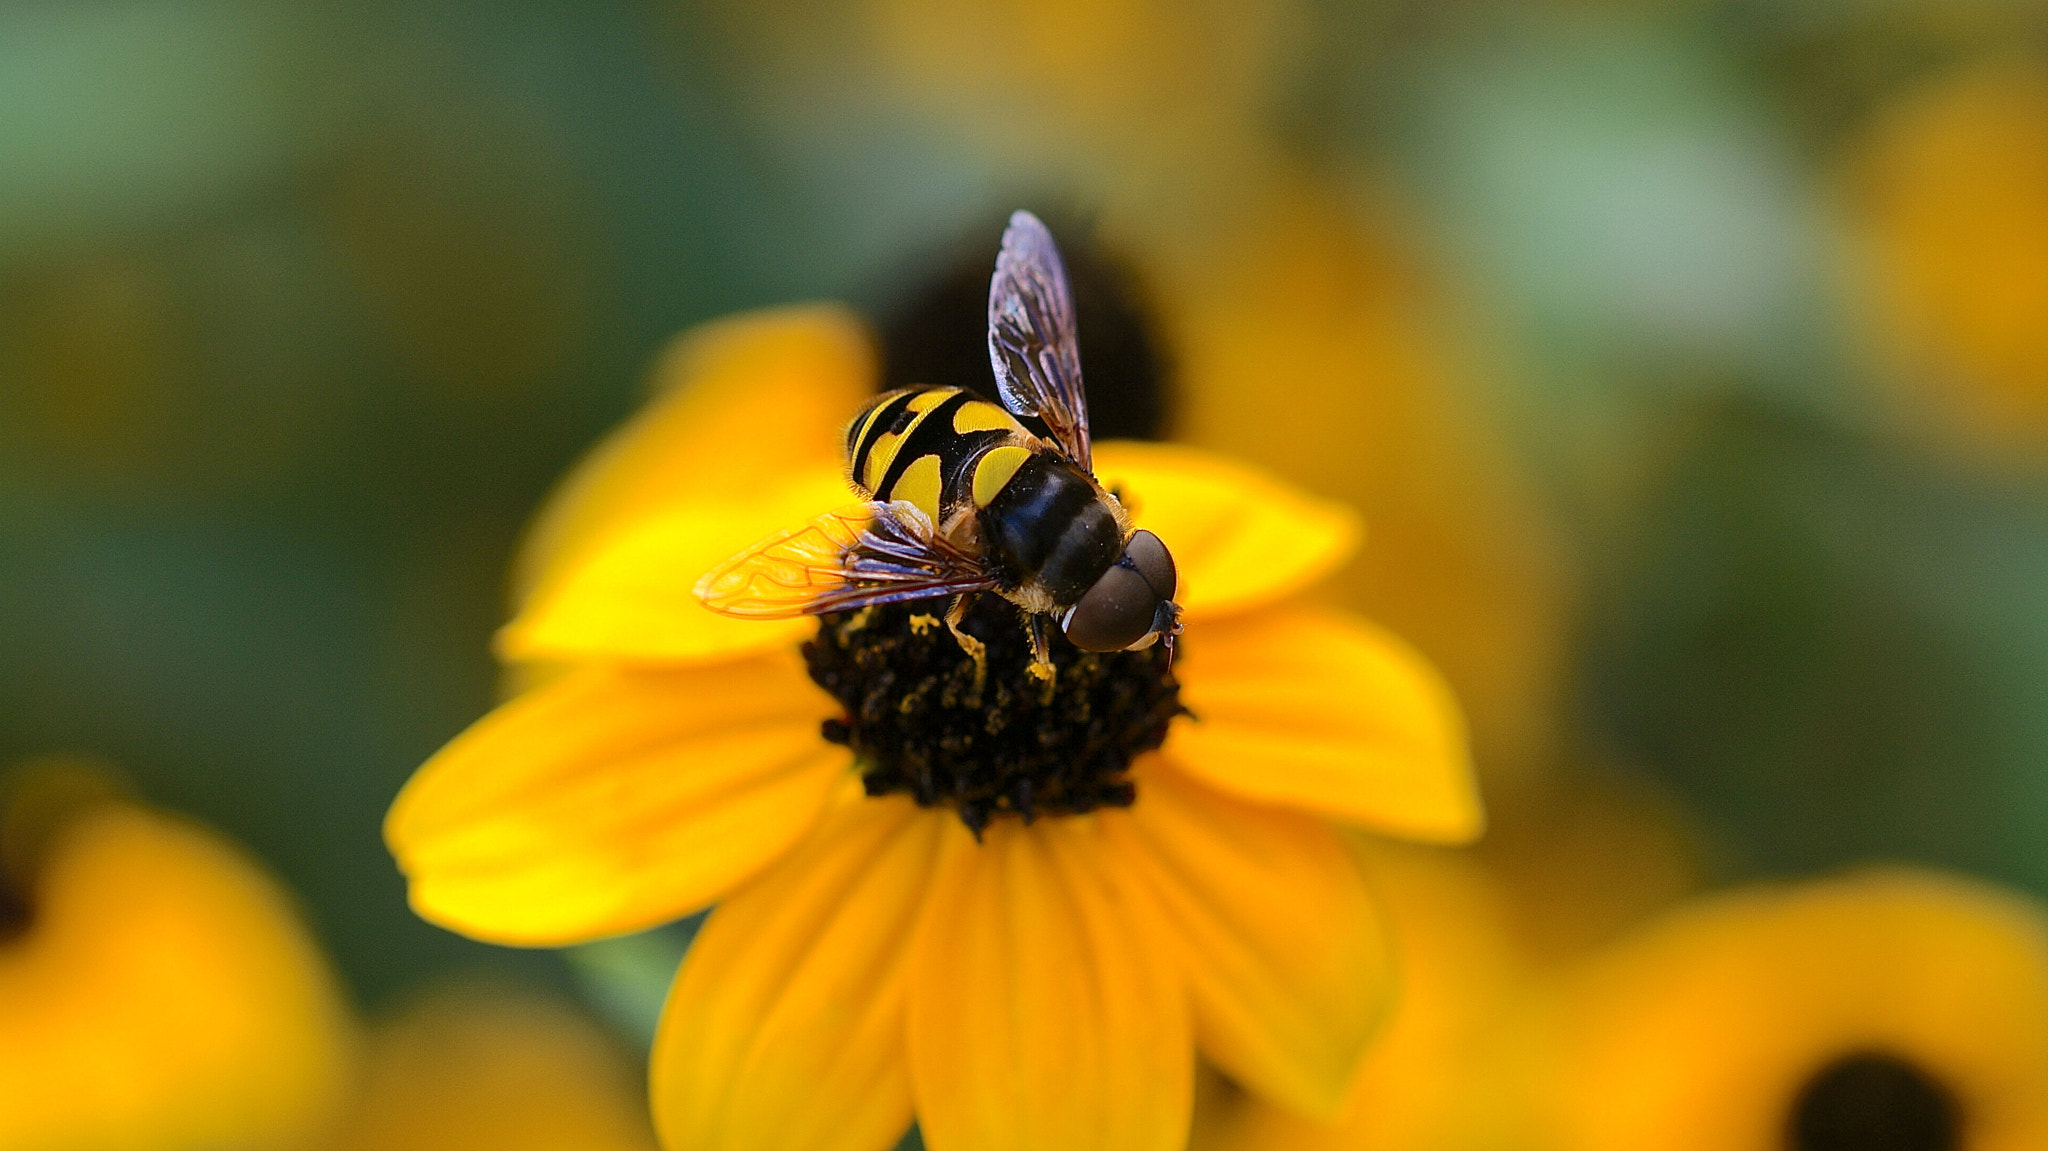 Photograph Passive Pollination  by Zack Parton on 500px